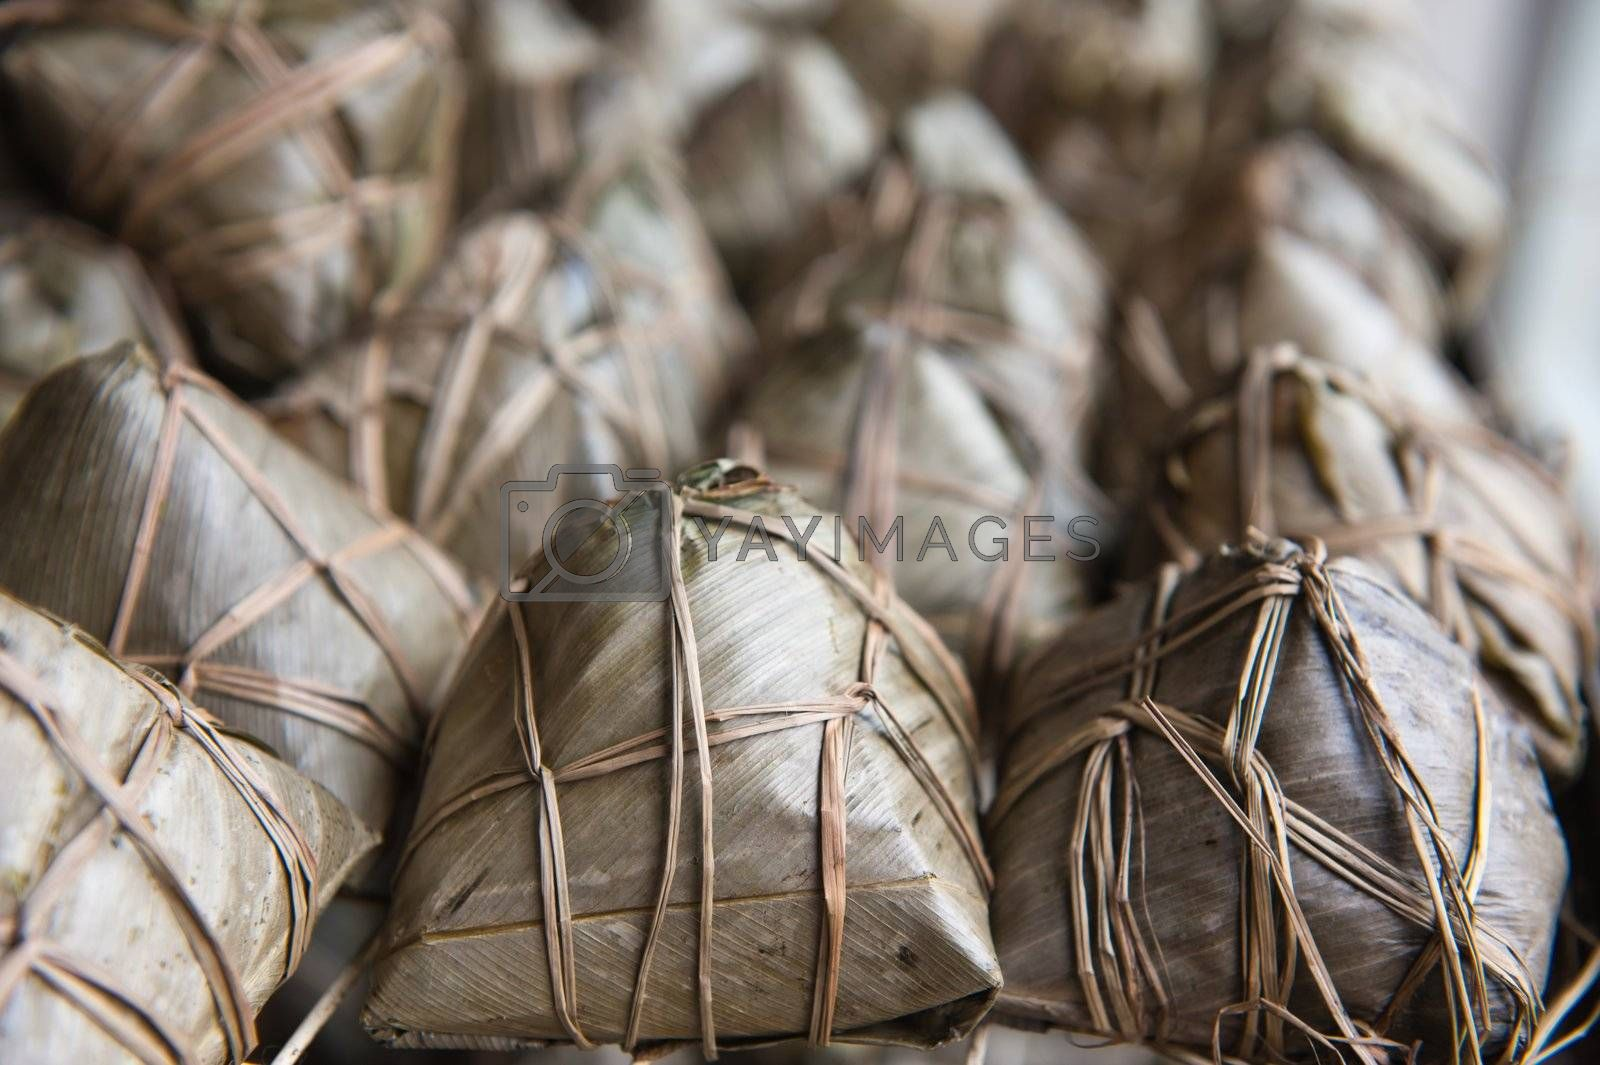 Chinese rice dumplings wrapped in reed leaves